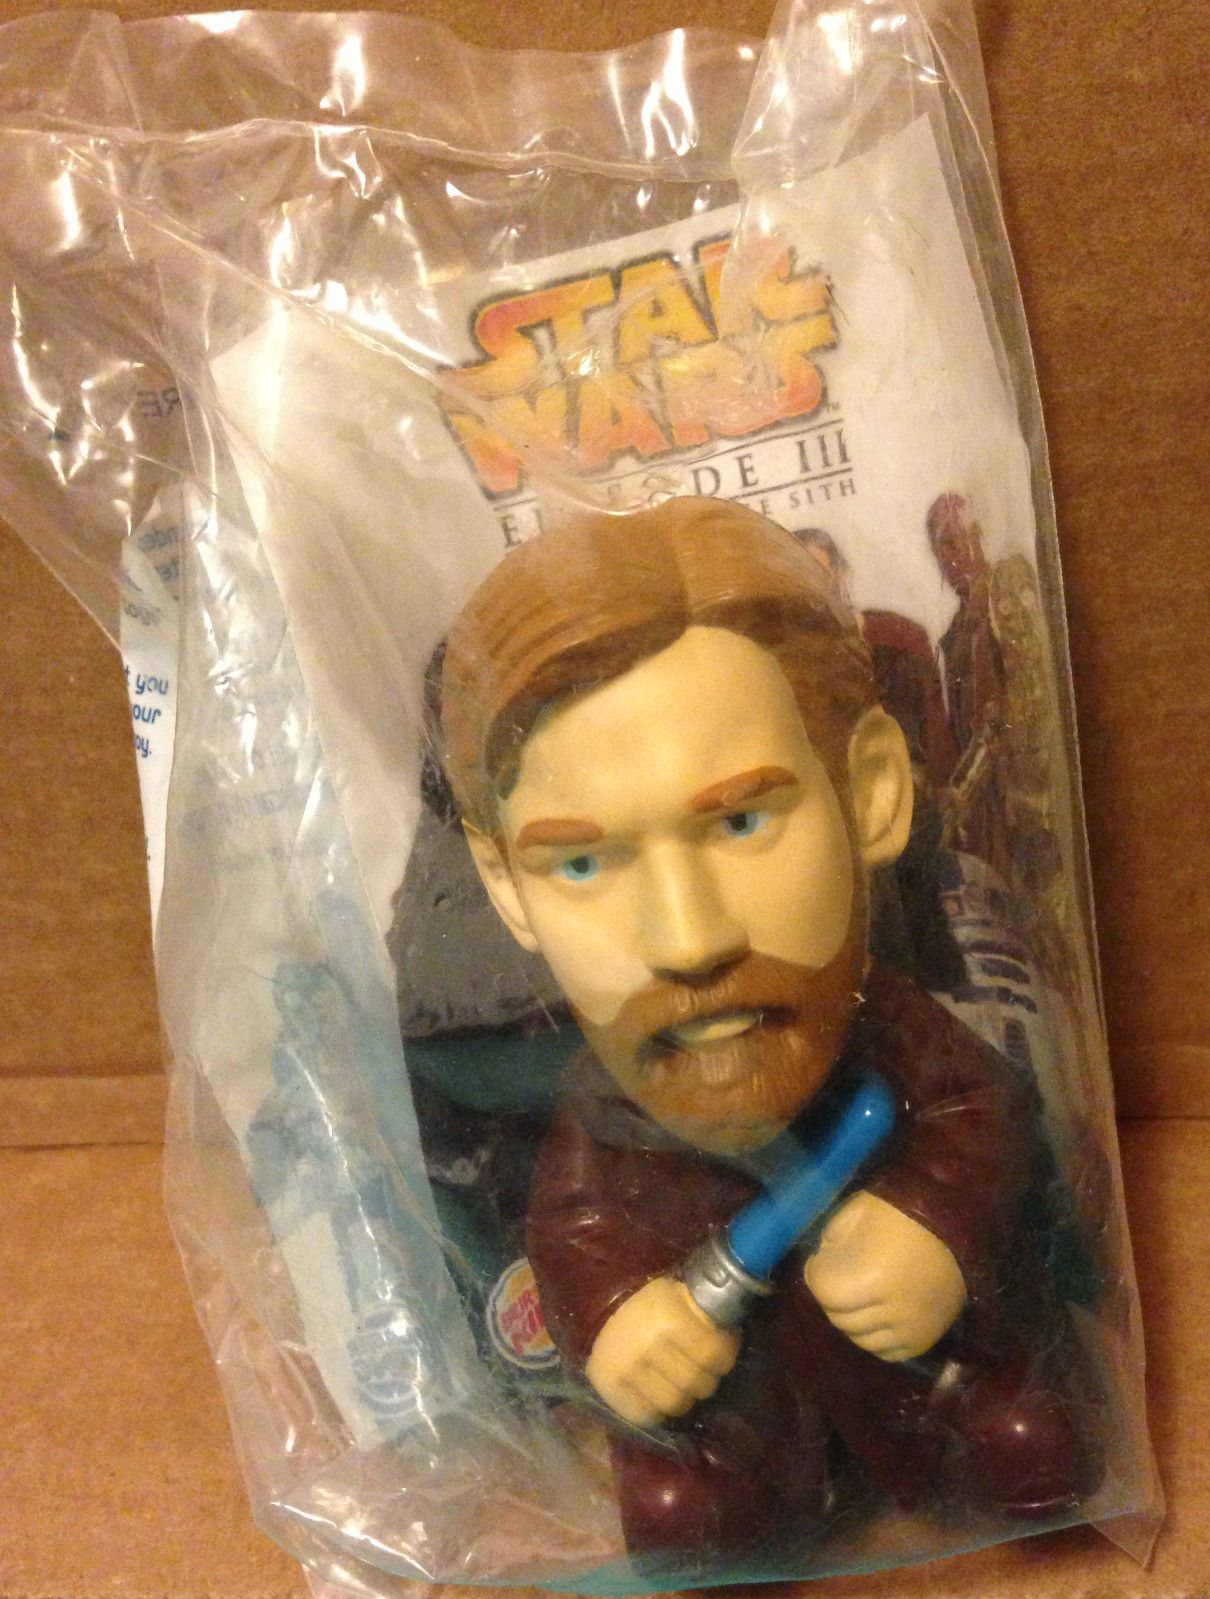 2005 Burger King Kid's Meal Star Wars Episode III ROTS Obi Wan Kenobi Toy